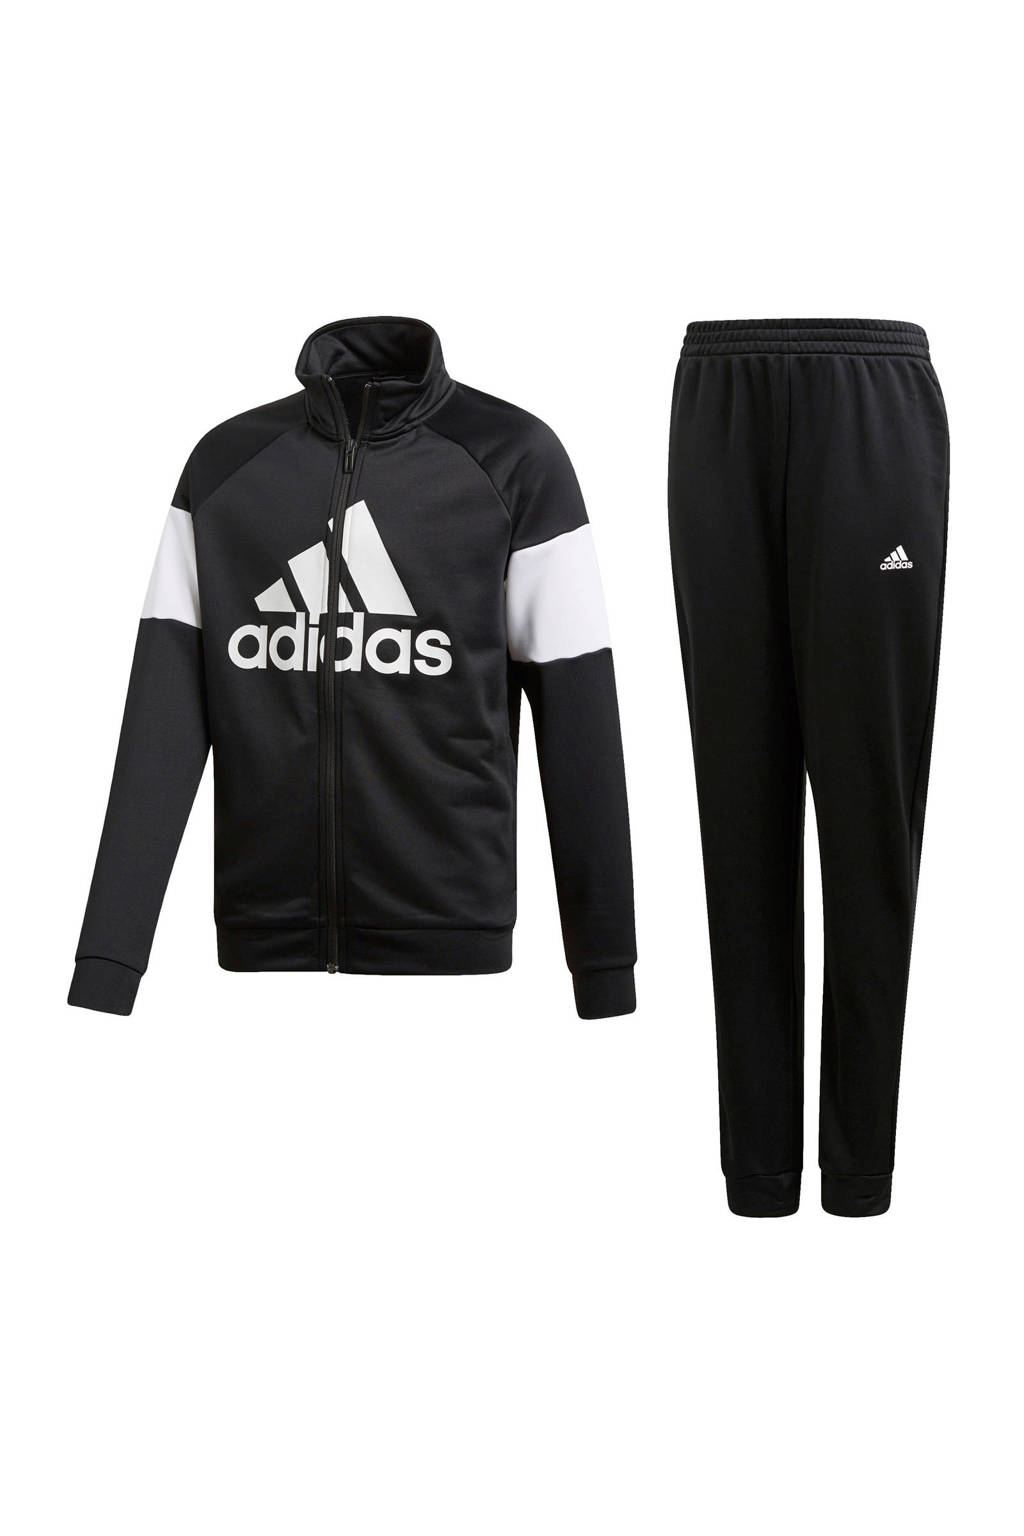 adidas Performance   trainingspak zwart, Zwart